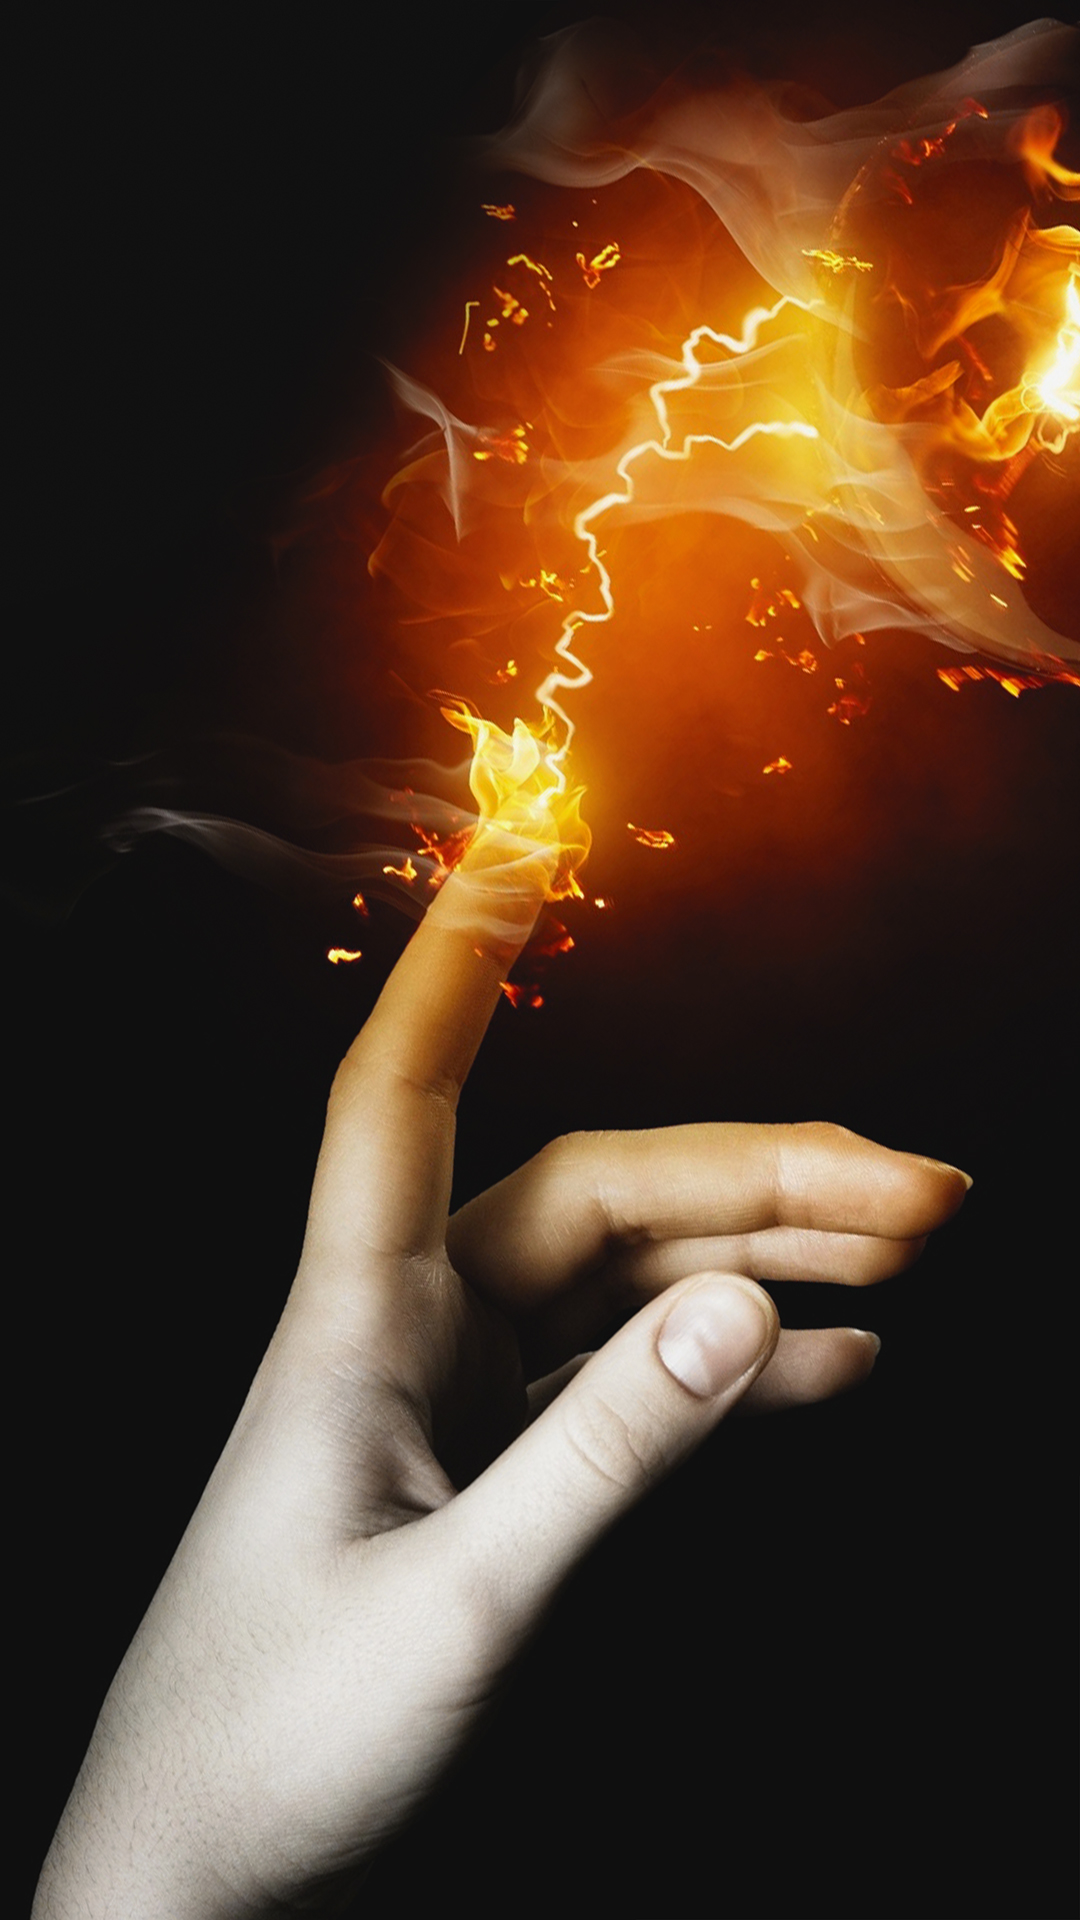 Fire Touch Hd Wallpaper For Your Mobile Phone